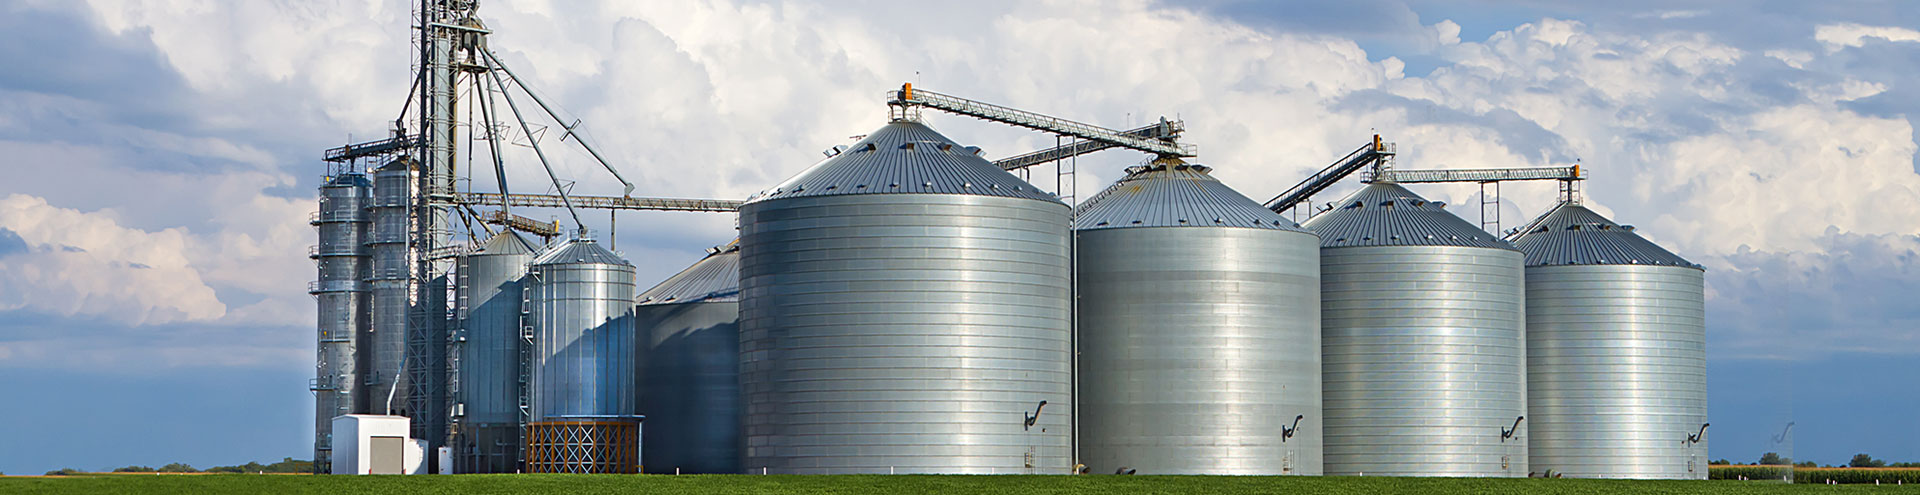 A large collection of metal silos sitting on a farm with clouds in the background.